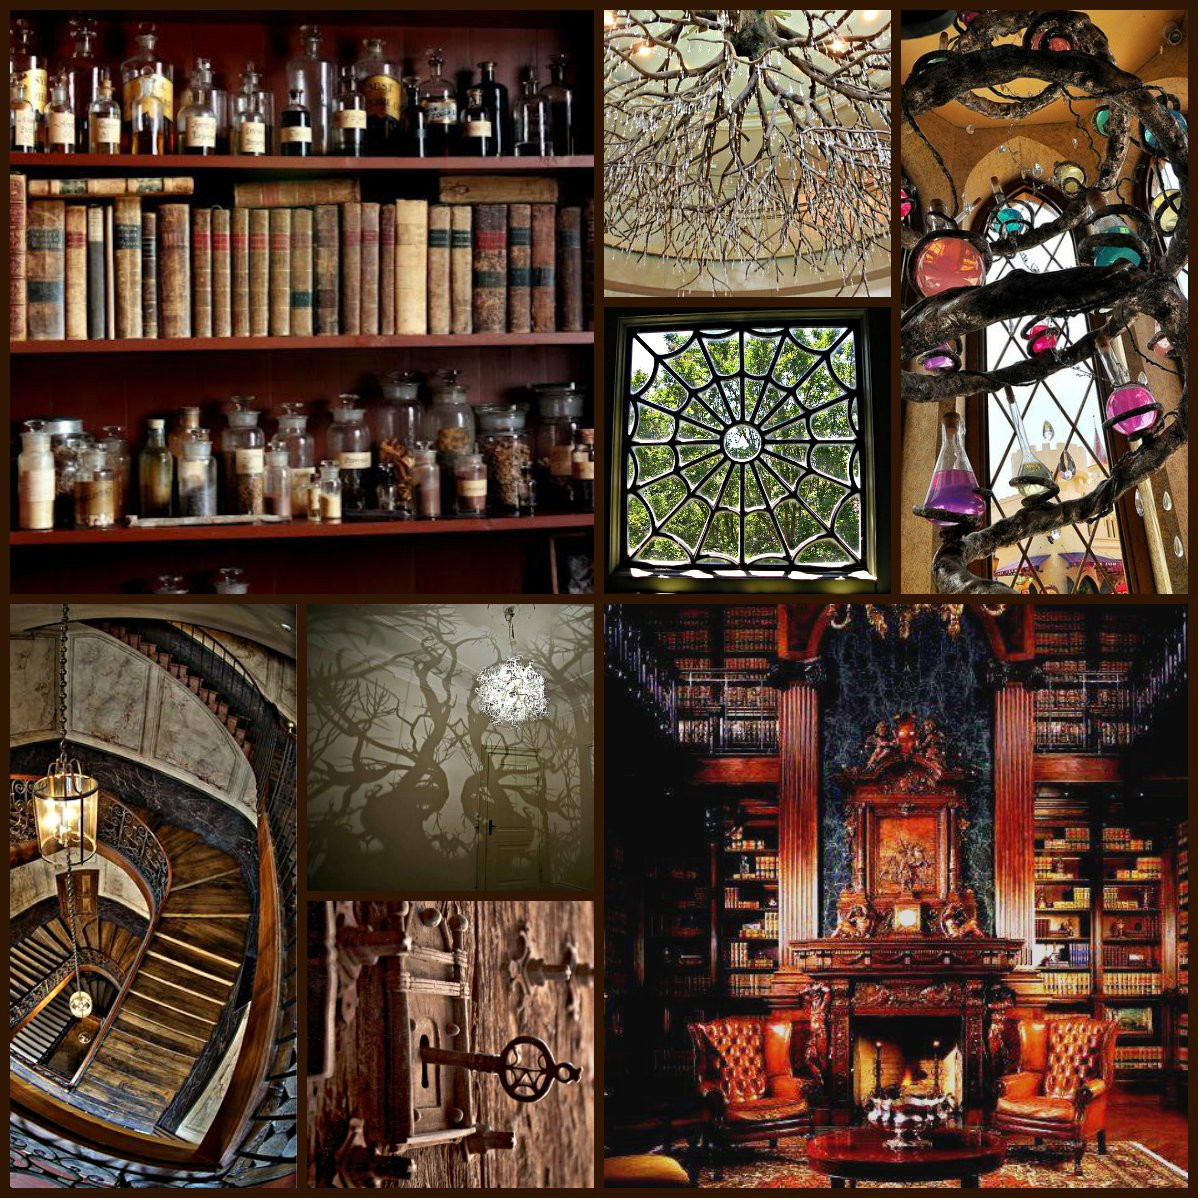 The moody, mysterious & musty Hasketh Manor from The Destiny of Dragons series. #epicfantasy https://t.co/8a7UgVLB1J https://t.co/BvpBROsmqb